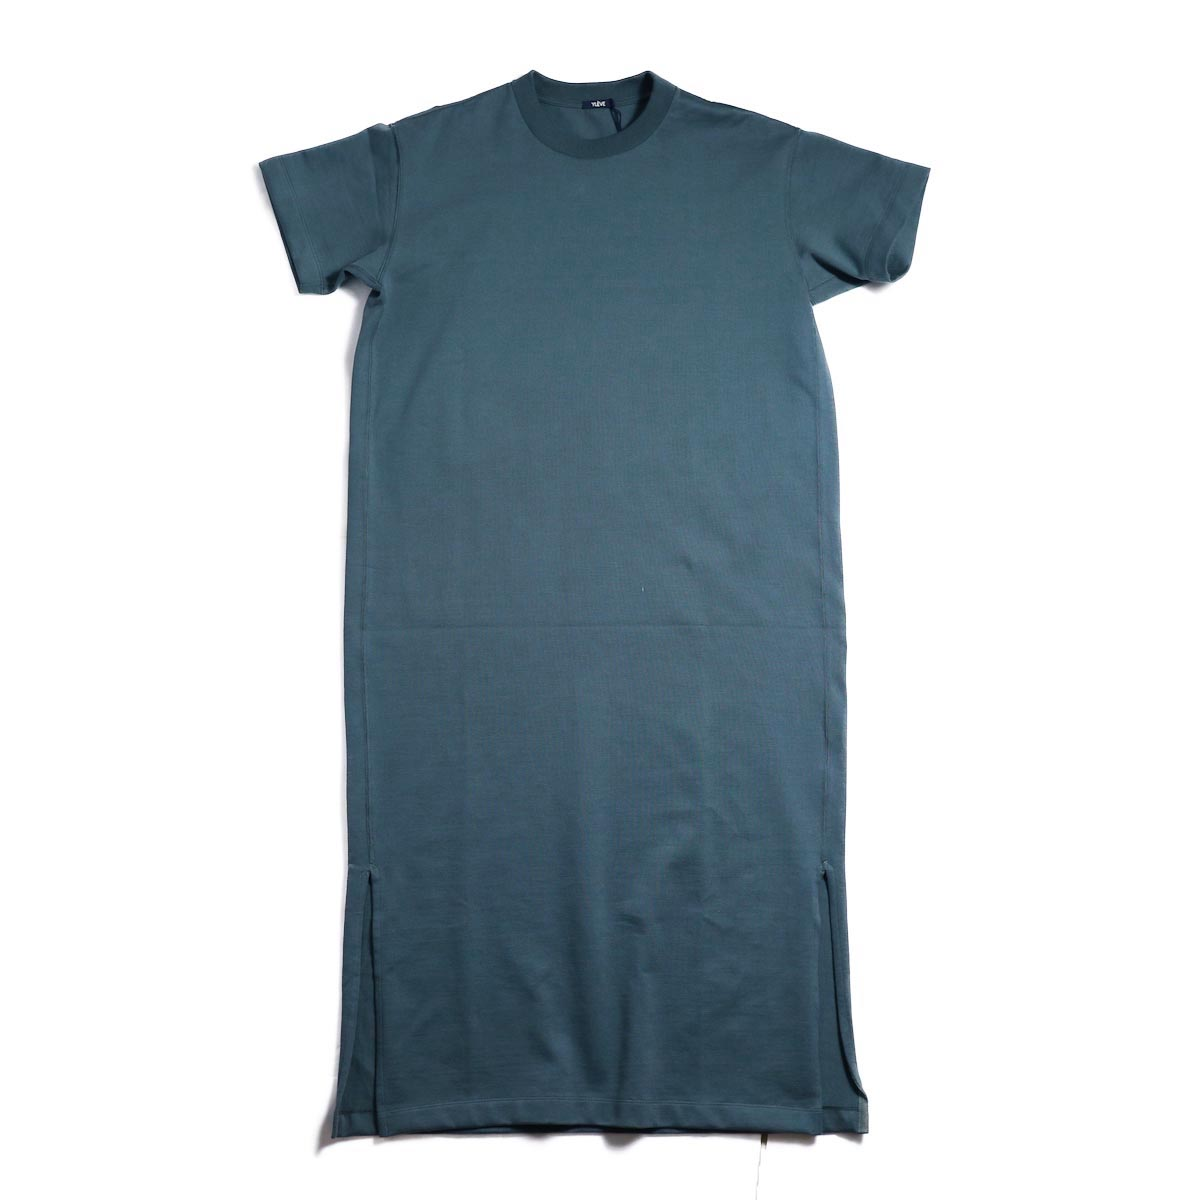 YLEVE / Heavy Weight Cotton OP -Green